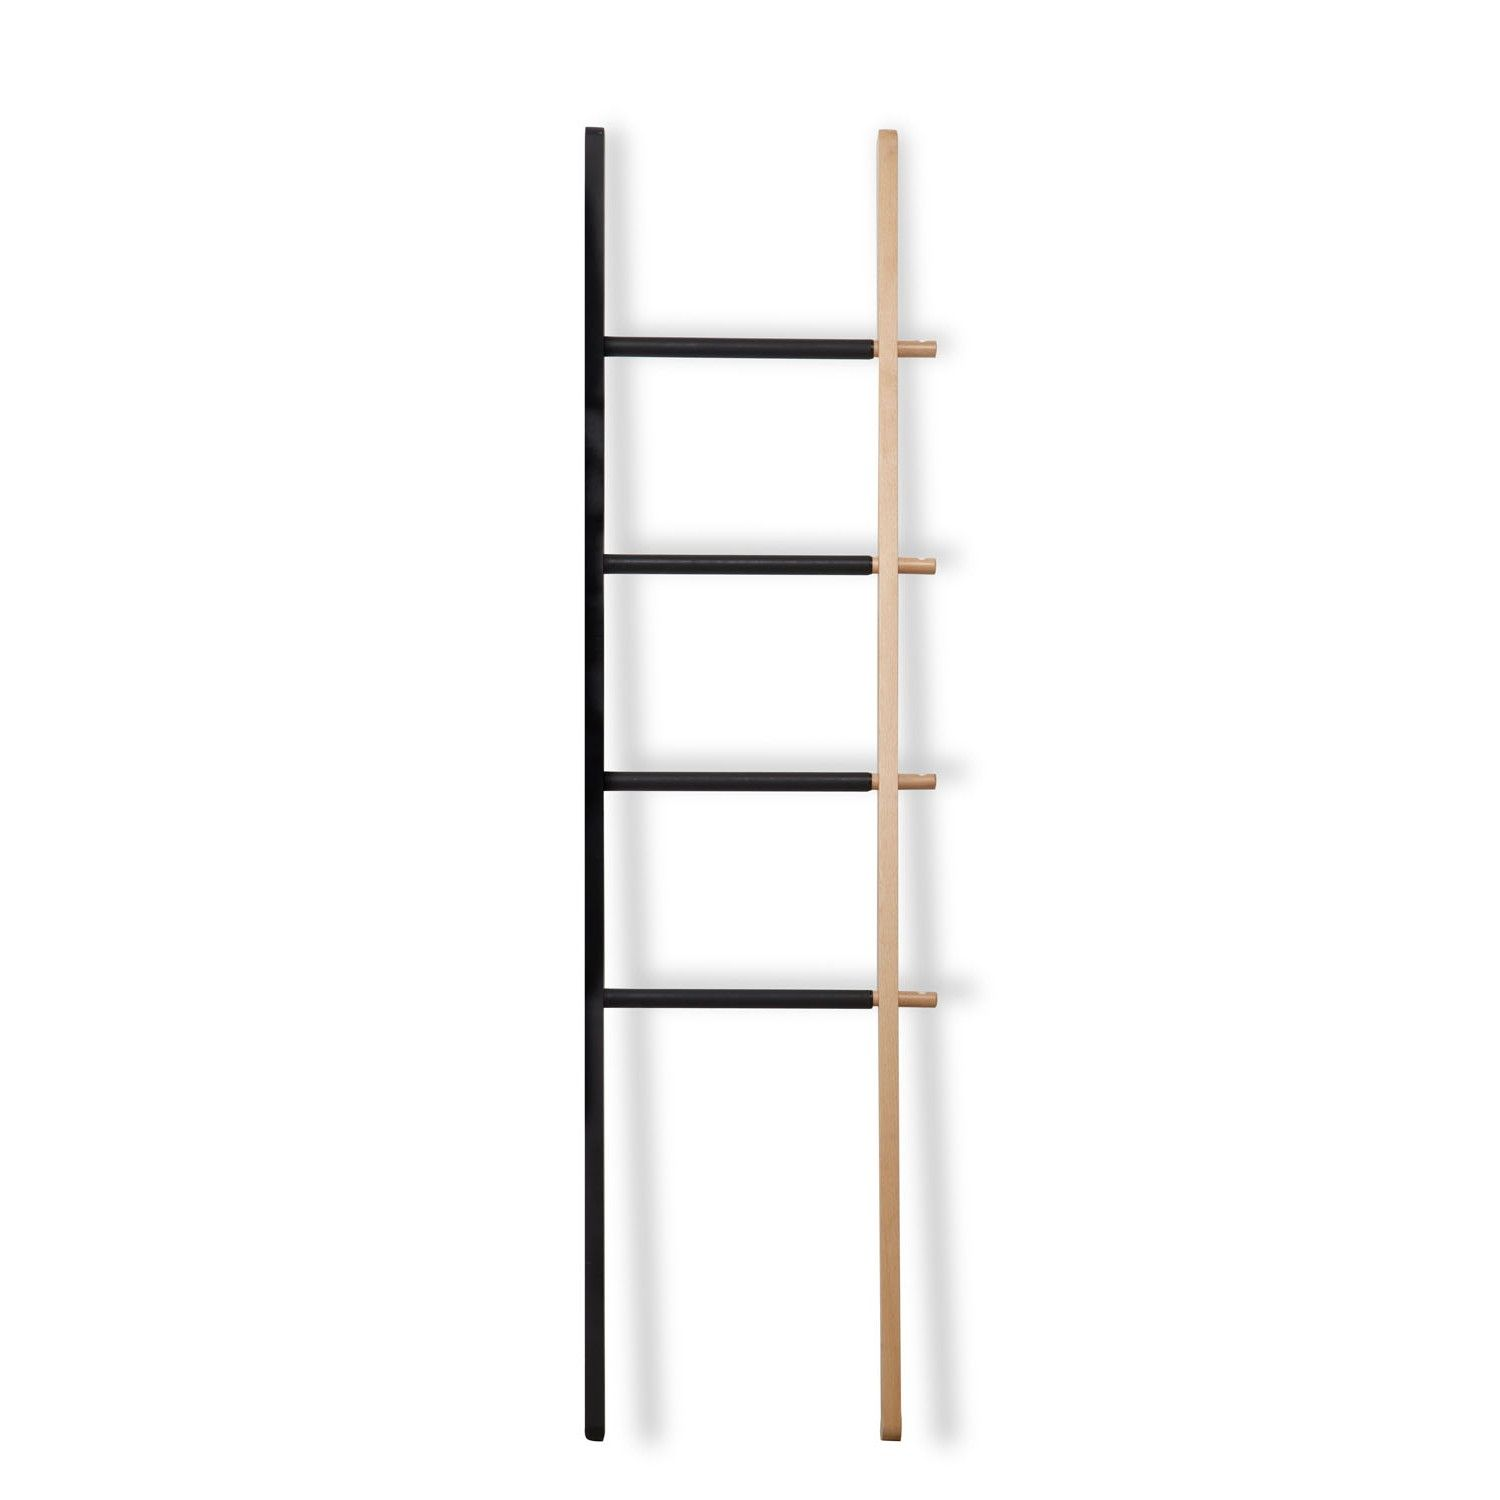 Umbra perchero hub ladder original perchero de pared hub ladder de umbra una escalera de madera - Perchero original pared ...